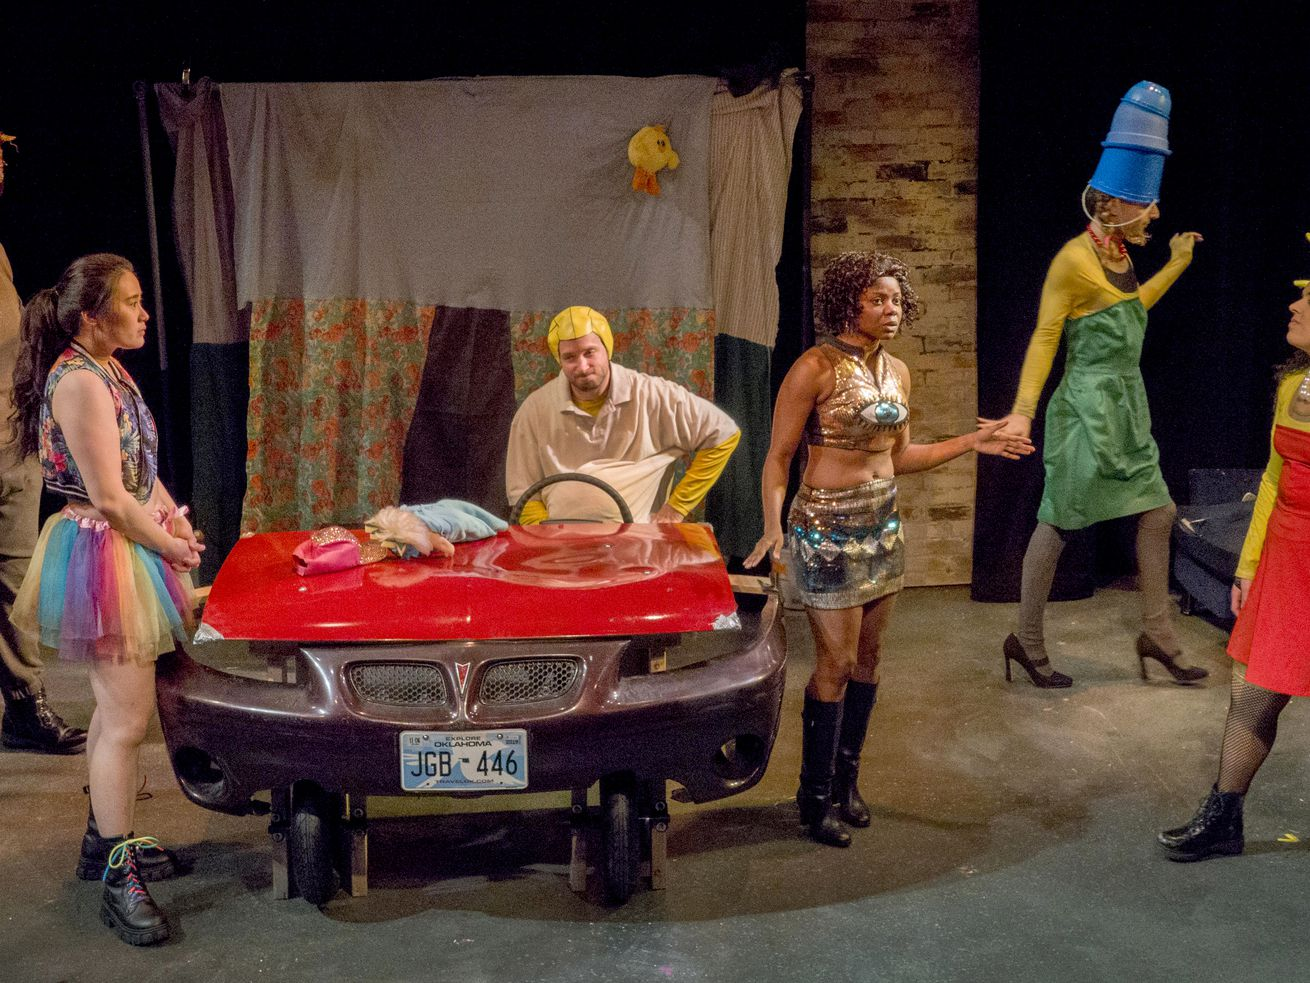 """Jonah D. Winston (from left), Eileen Doan, Daniel Desmarais, Leslie Ann Sheppard, Will Wilhelm and Ana Silva are shown in a scene from Theater Wit's """"Mr. Burns, a post-electric play."""""""